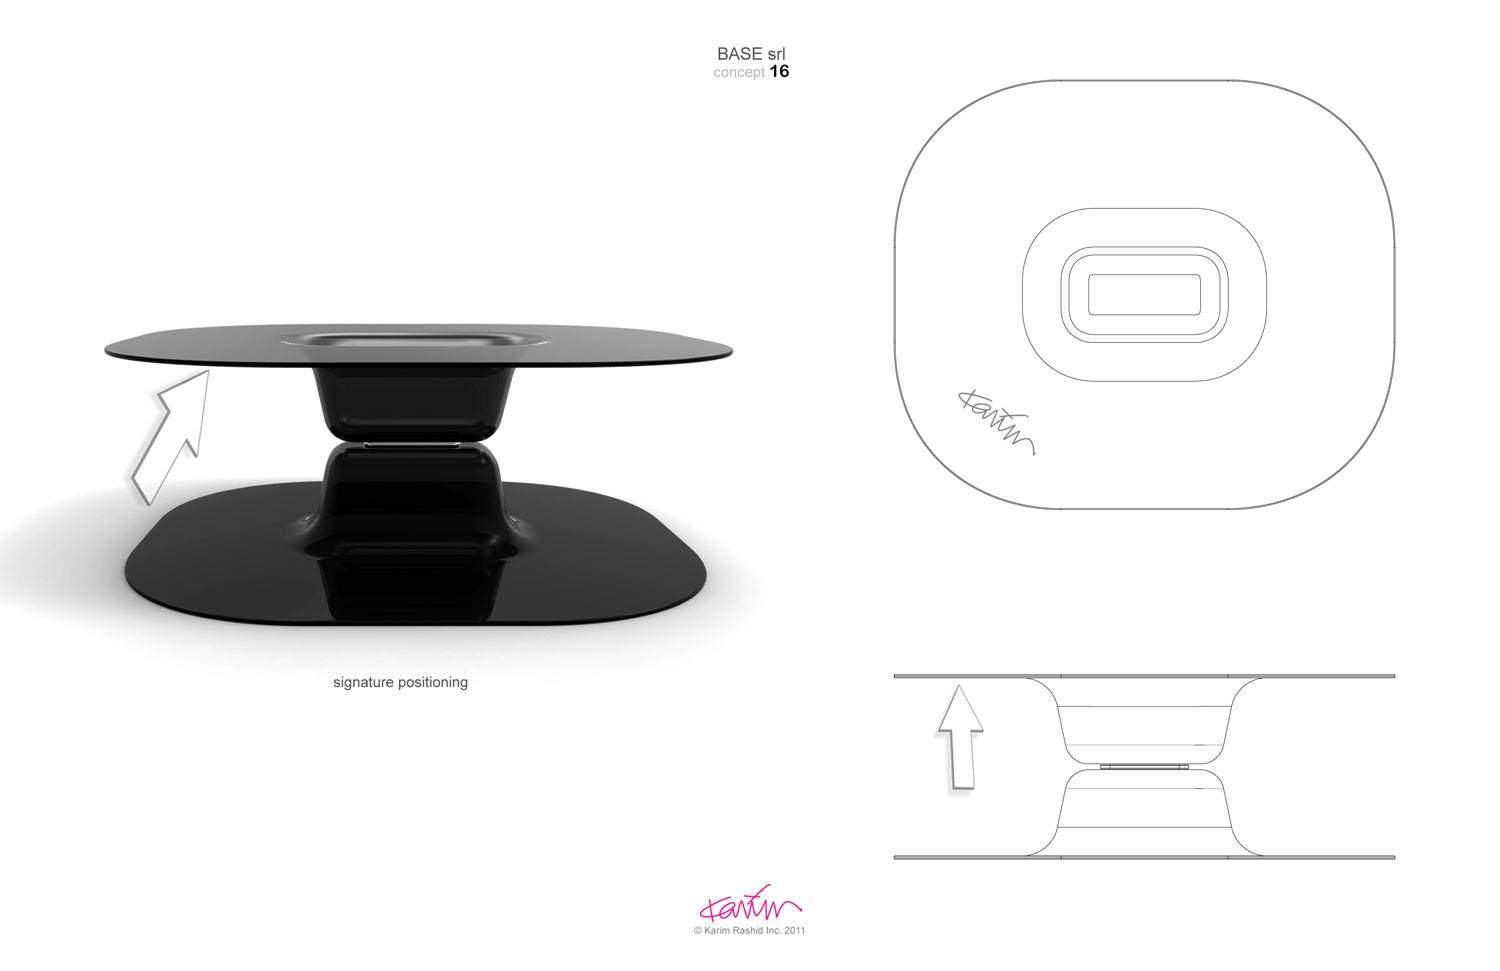 UPSIDEDOWN Table Limited edition, for Base, Italy 2014 2701_1568413305251500898_o